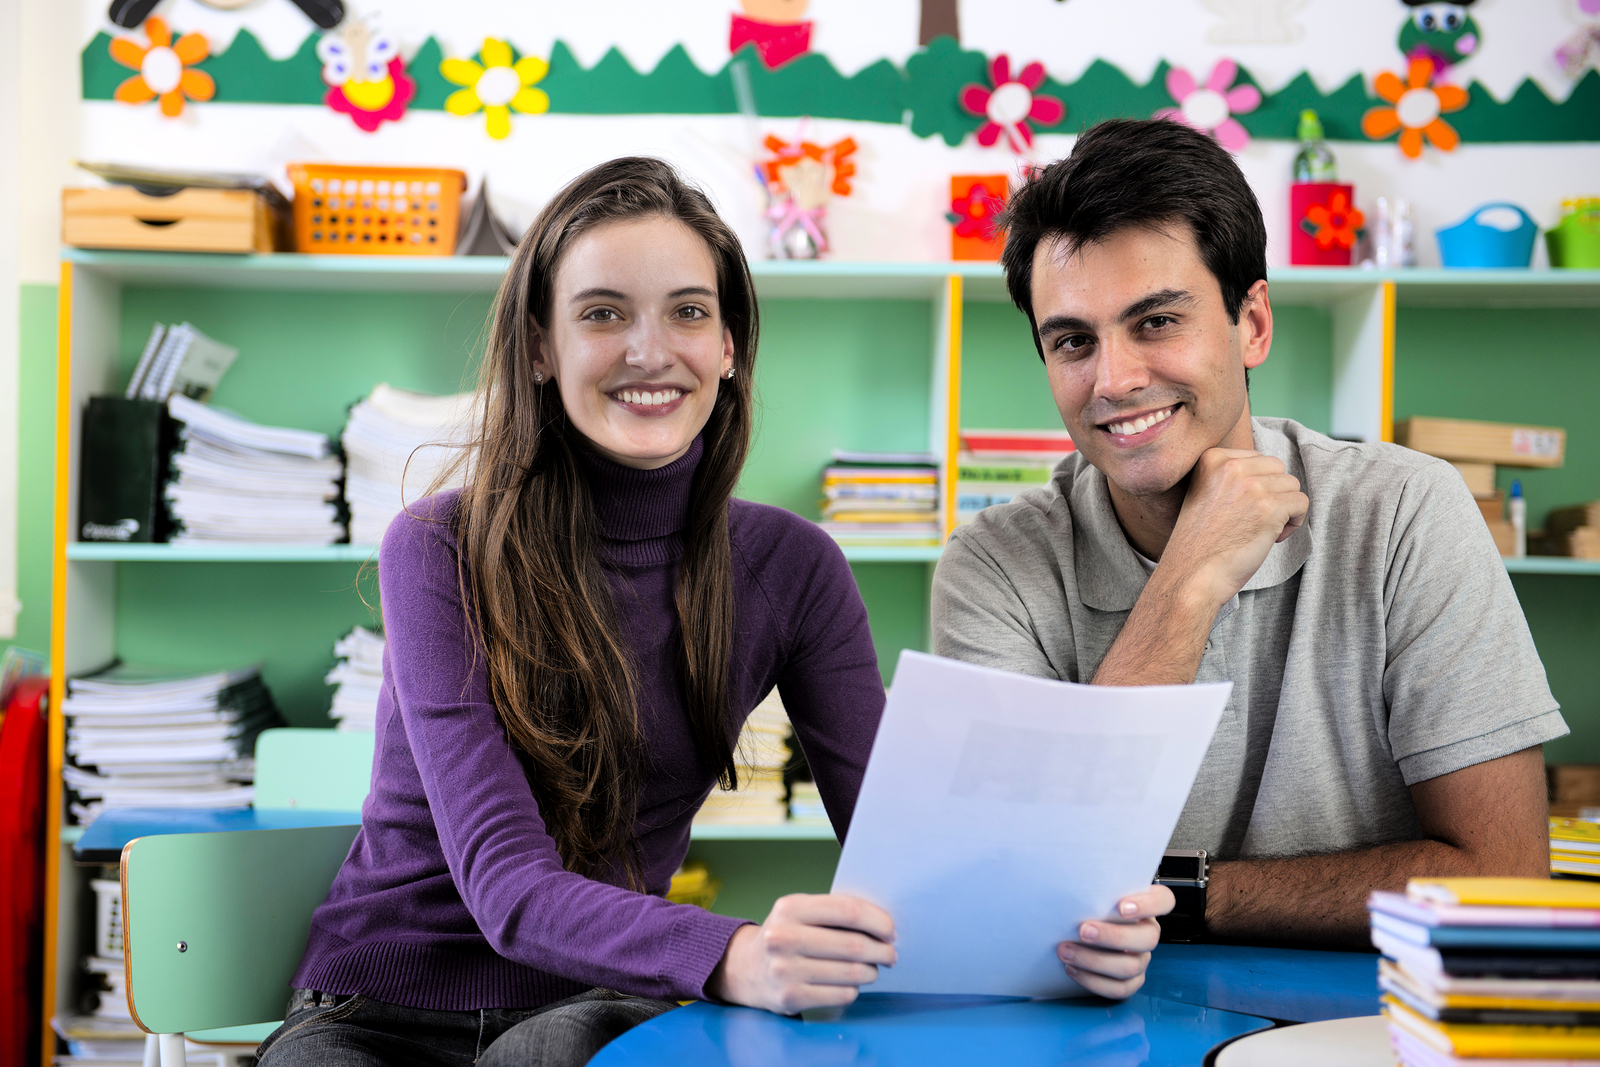 Amazing parent-teacher relationships won't happen overnight, but they will happen one positive interaction at a time.